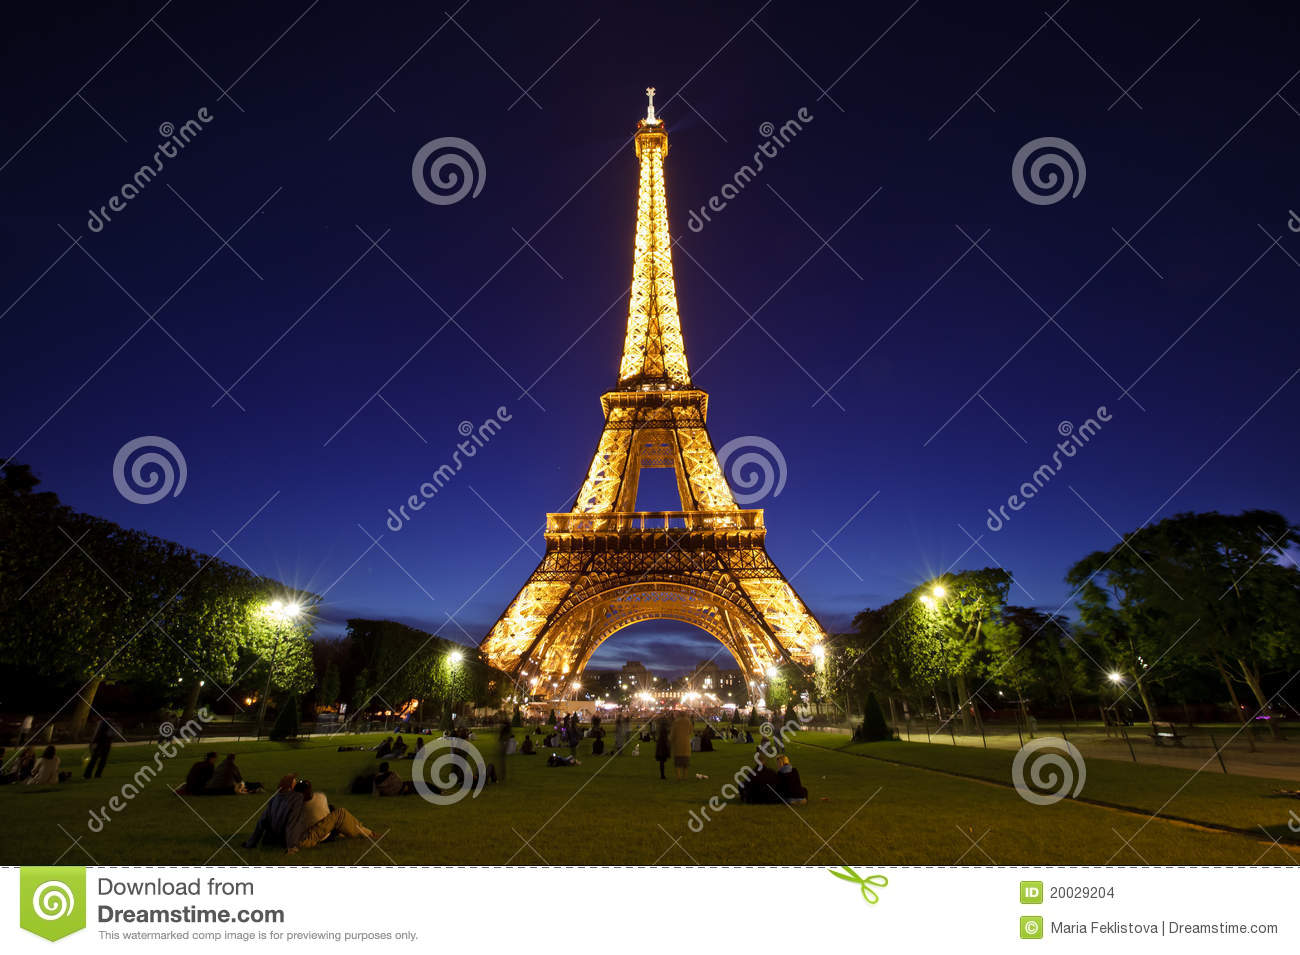 Eiffel Tower in night light, Paris, France.